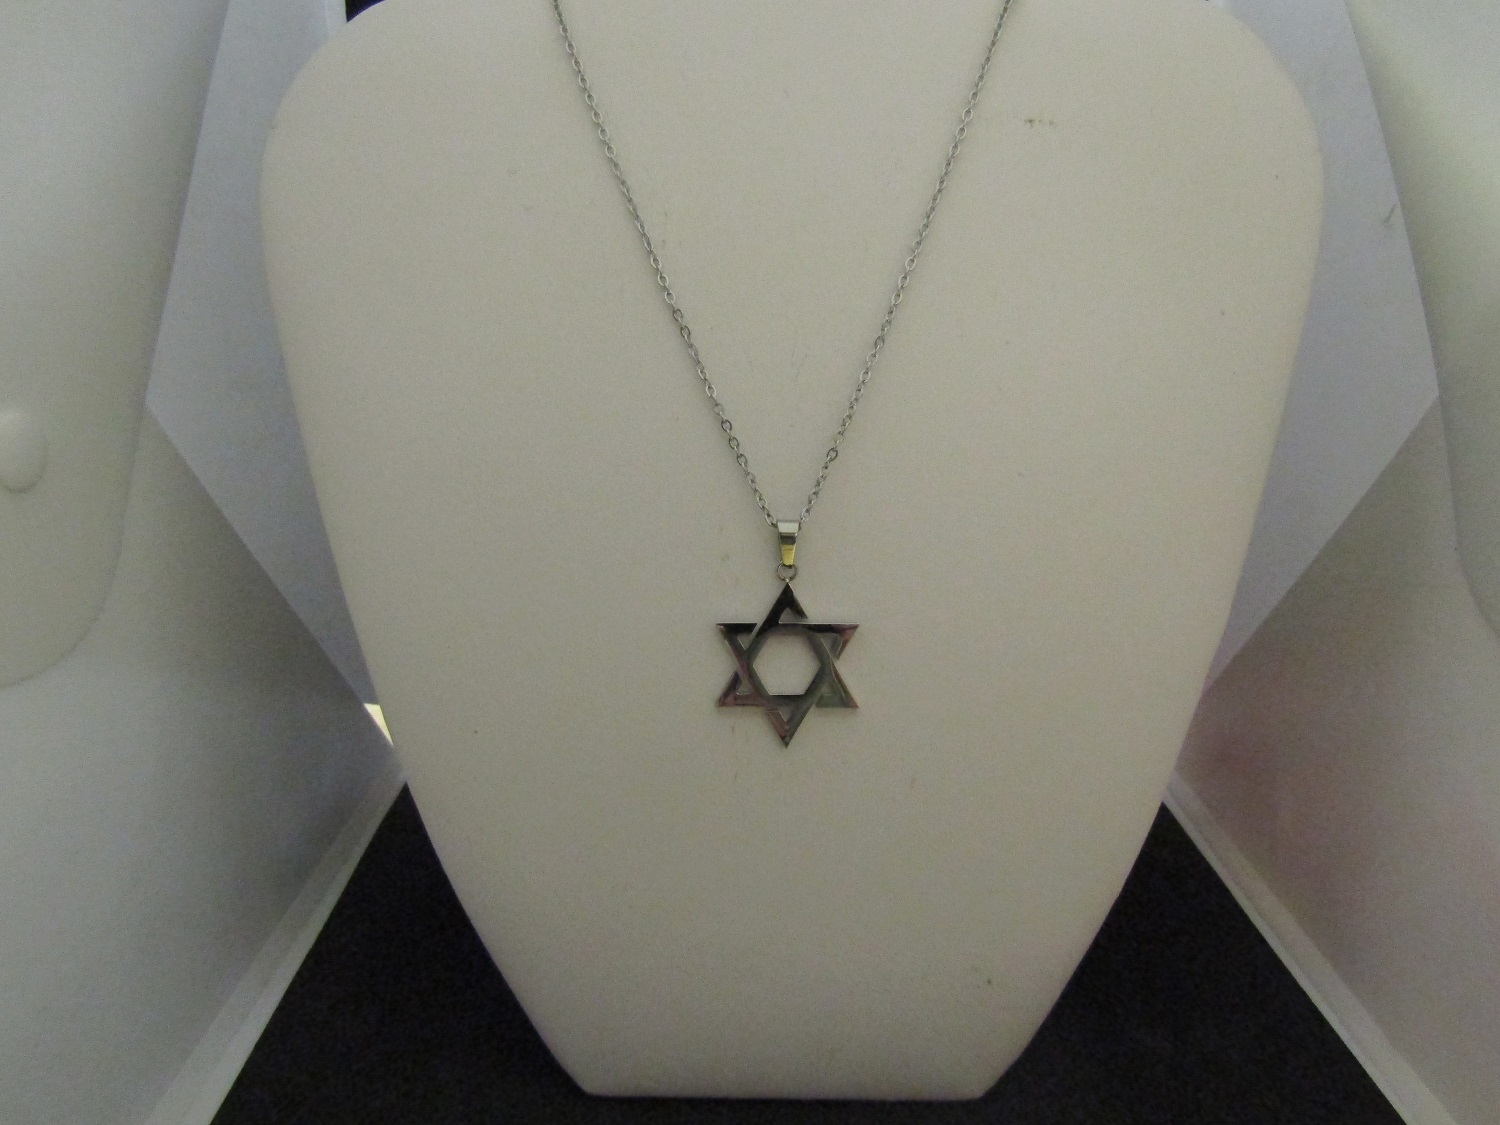 Star stainless steel chain necklace